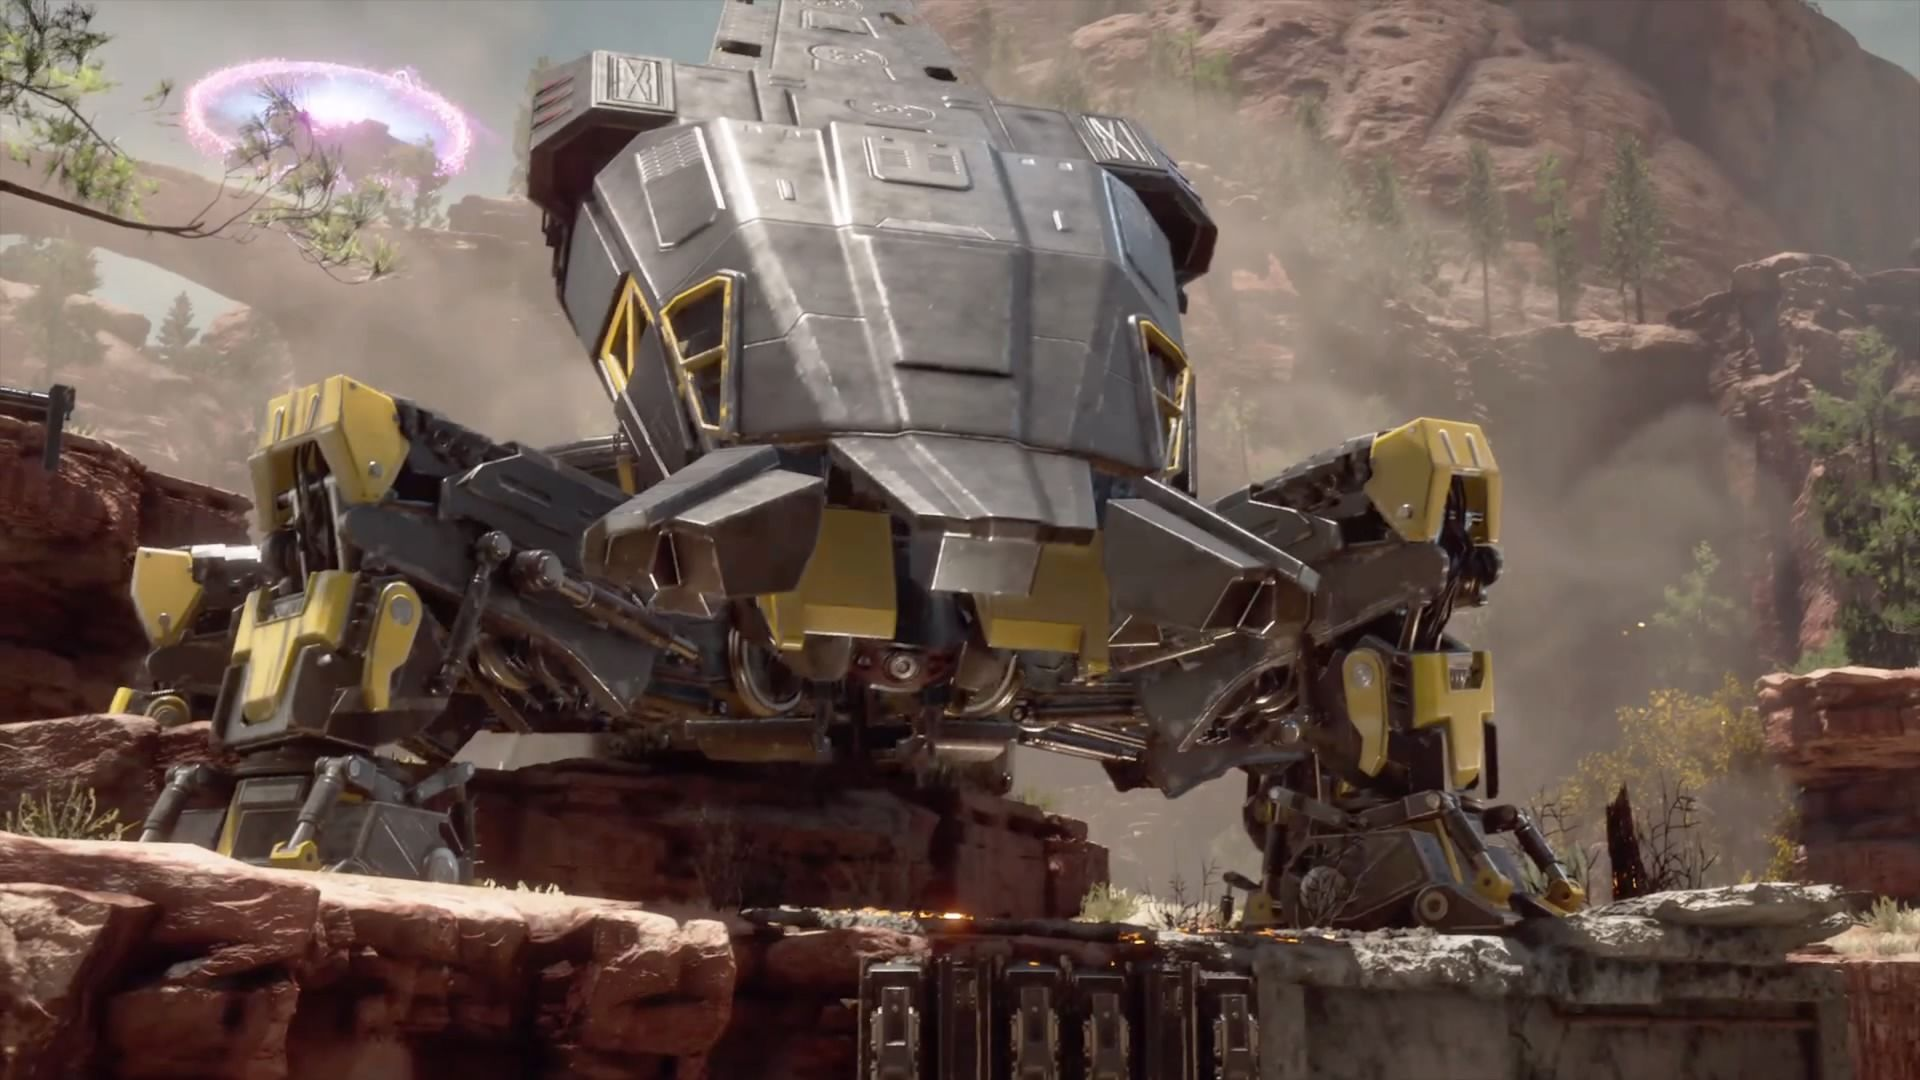 Marvel's Avengers Warbot Boss Mission Agony And The Ant Hill | Marvel avengers, Avengers images, Adventure video game